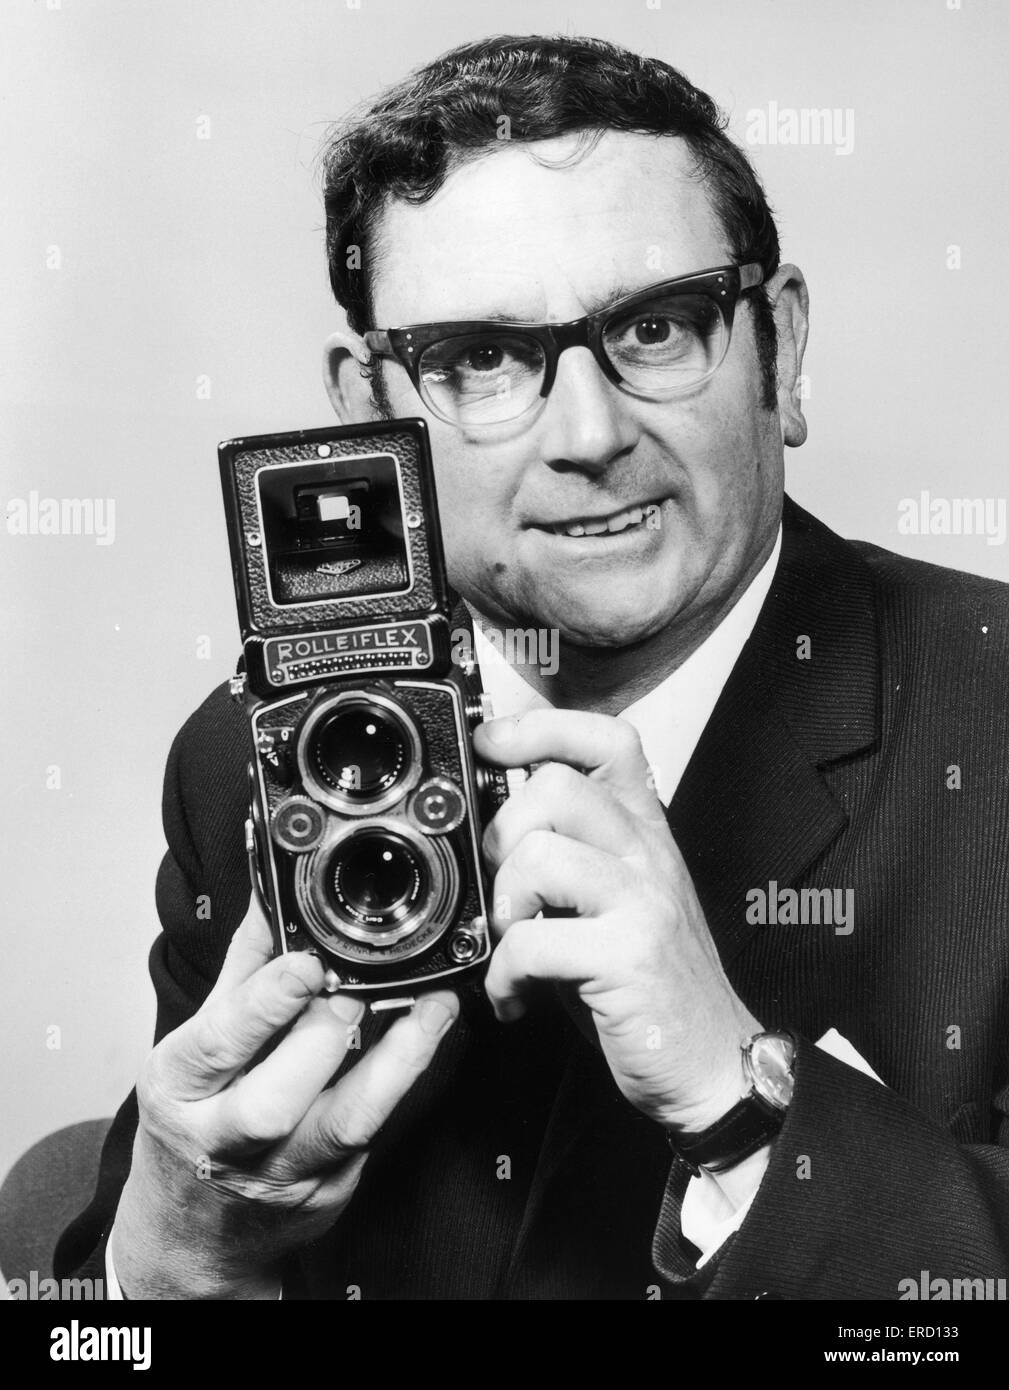 Charles Ley Daily Mirror Staff Photographer seen here with his trusty Rolleiflex camera. 22nd January 1970 - Stock Image